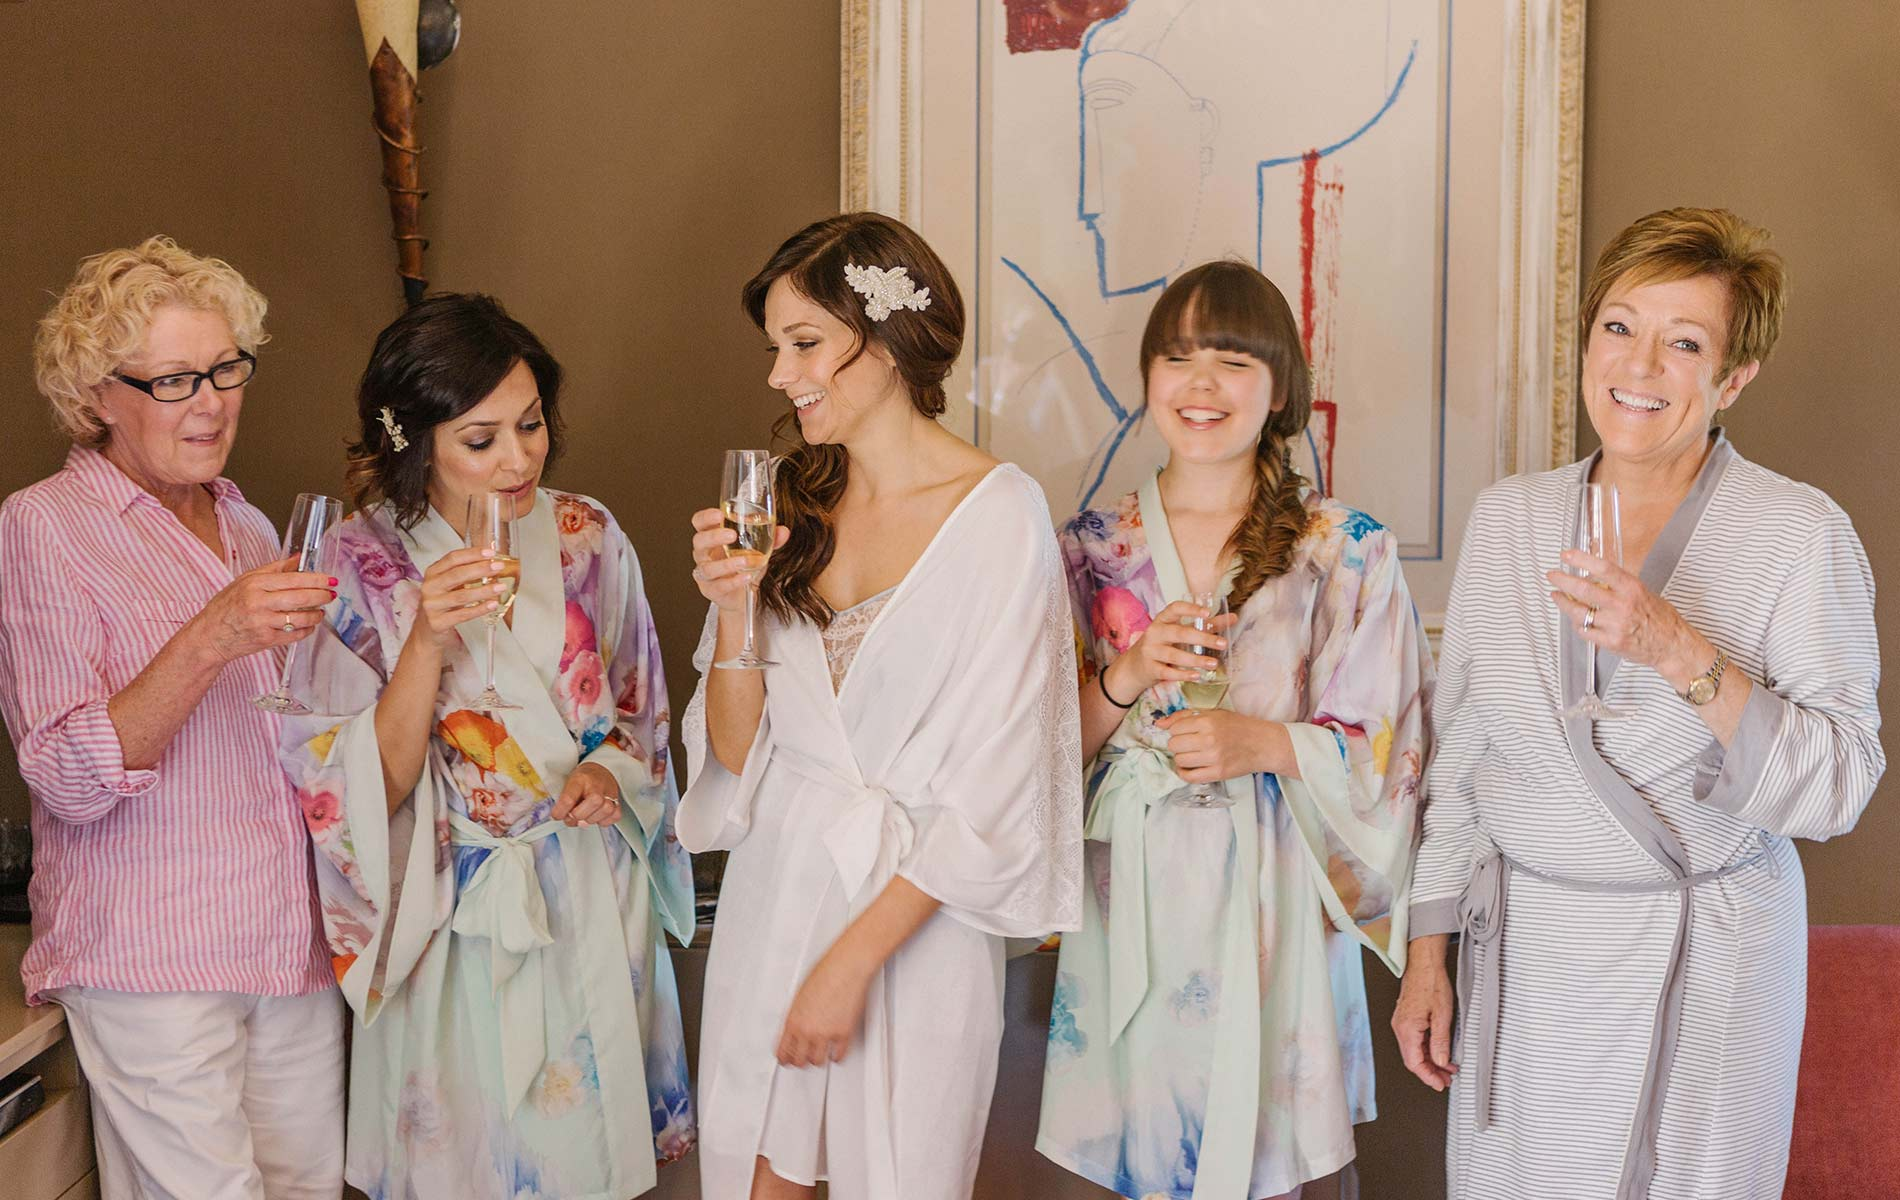 Bride and bridesmaids have fun. Wedding decarations. Castell de Emporda wedding photogaphy. Destination wedding photographer Spain.